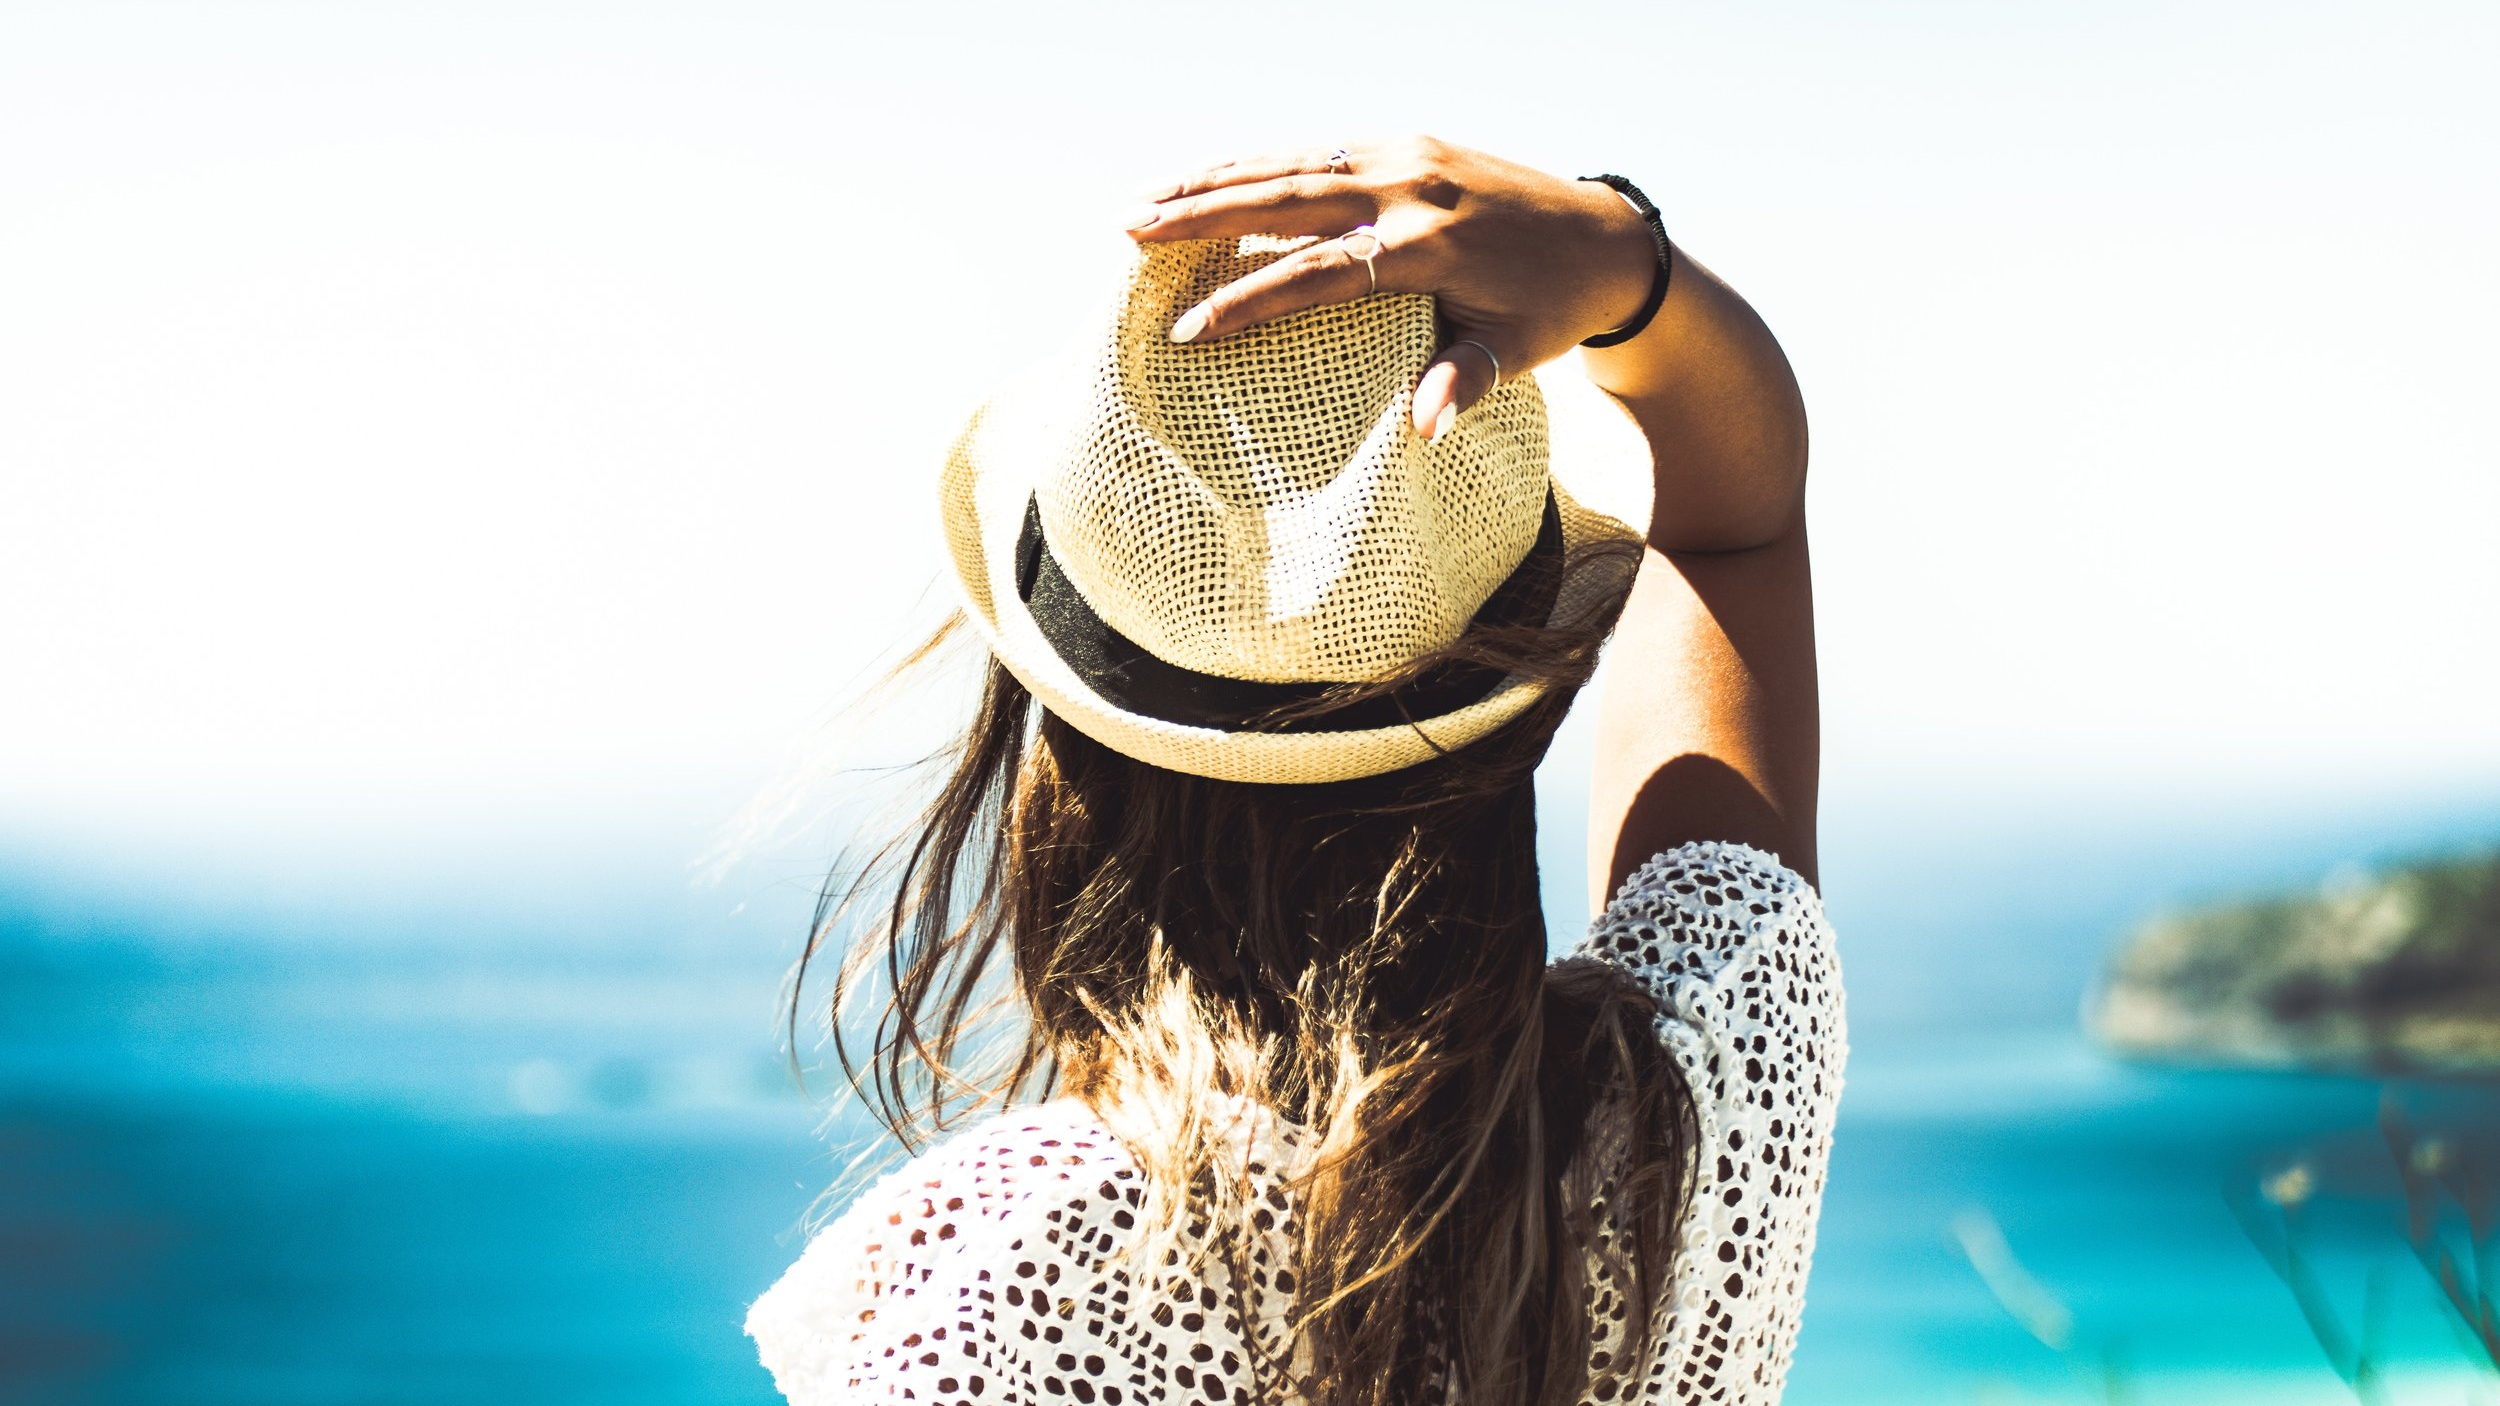 woman holding hat on head looking out to blue ocean